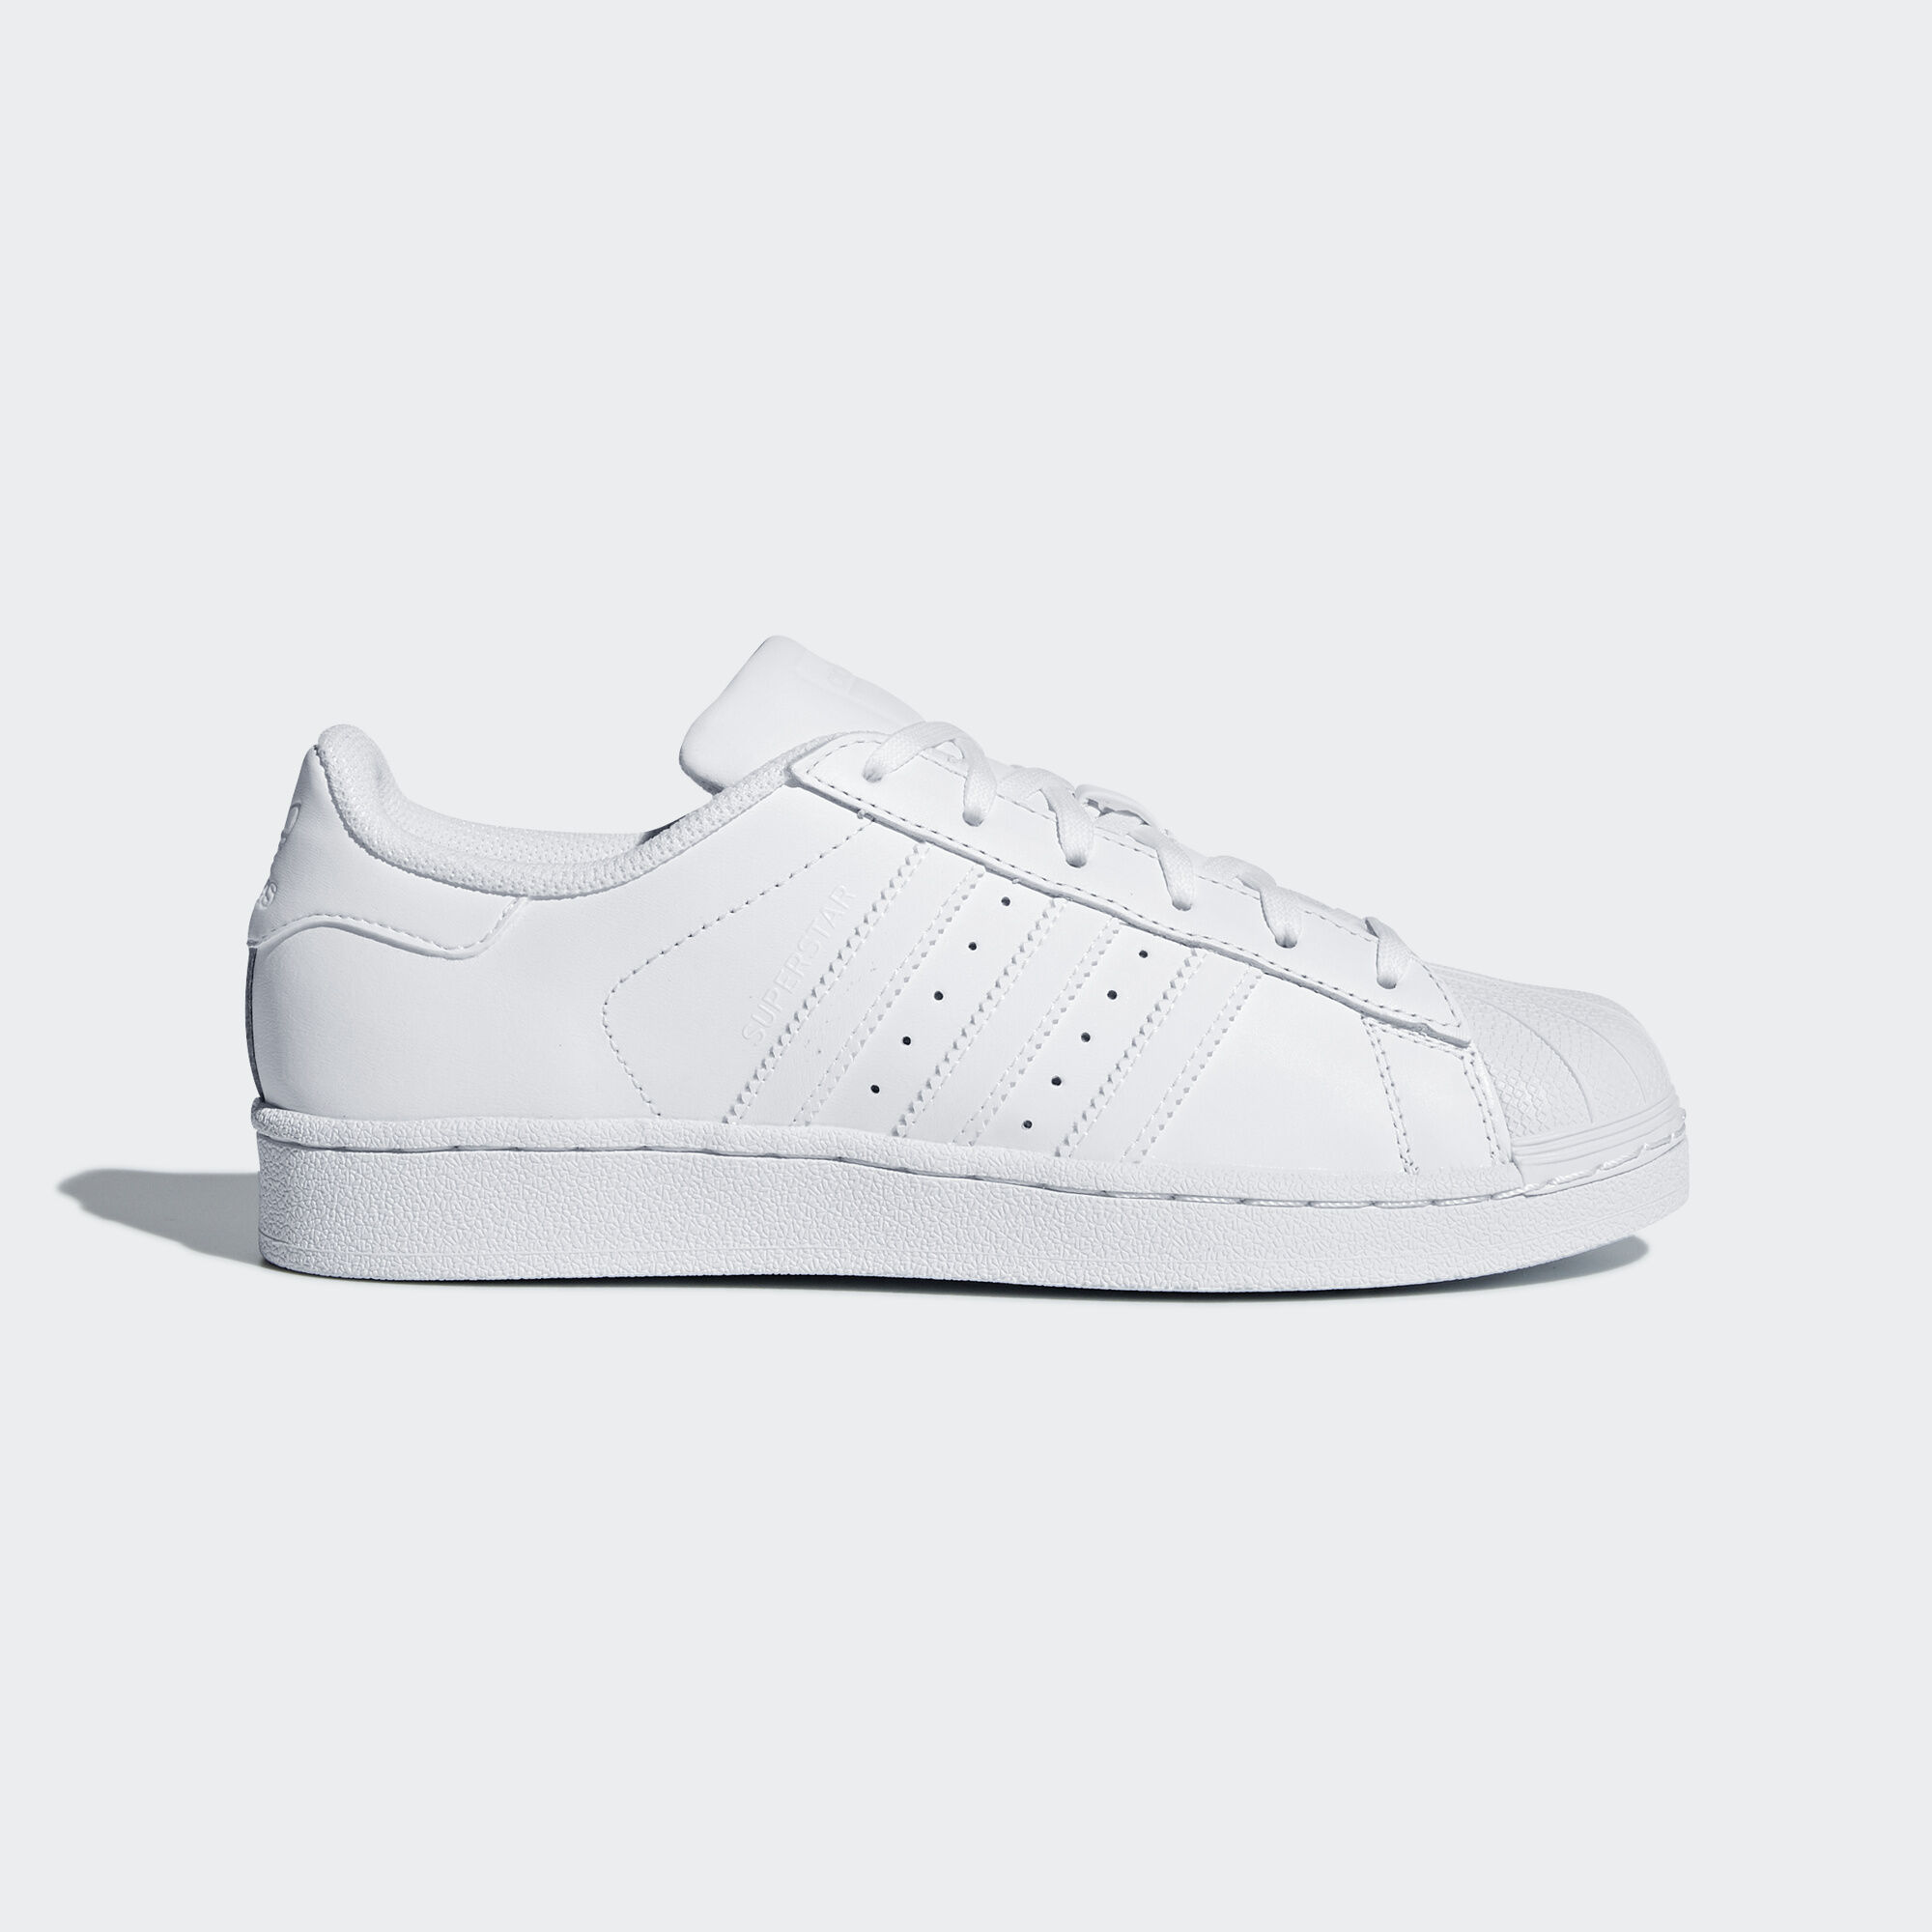 Womens White & Black Adidas Superstar Trainers schuh